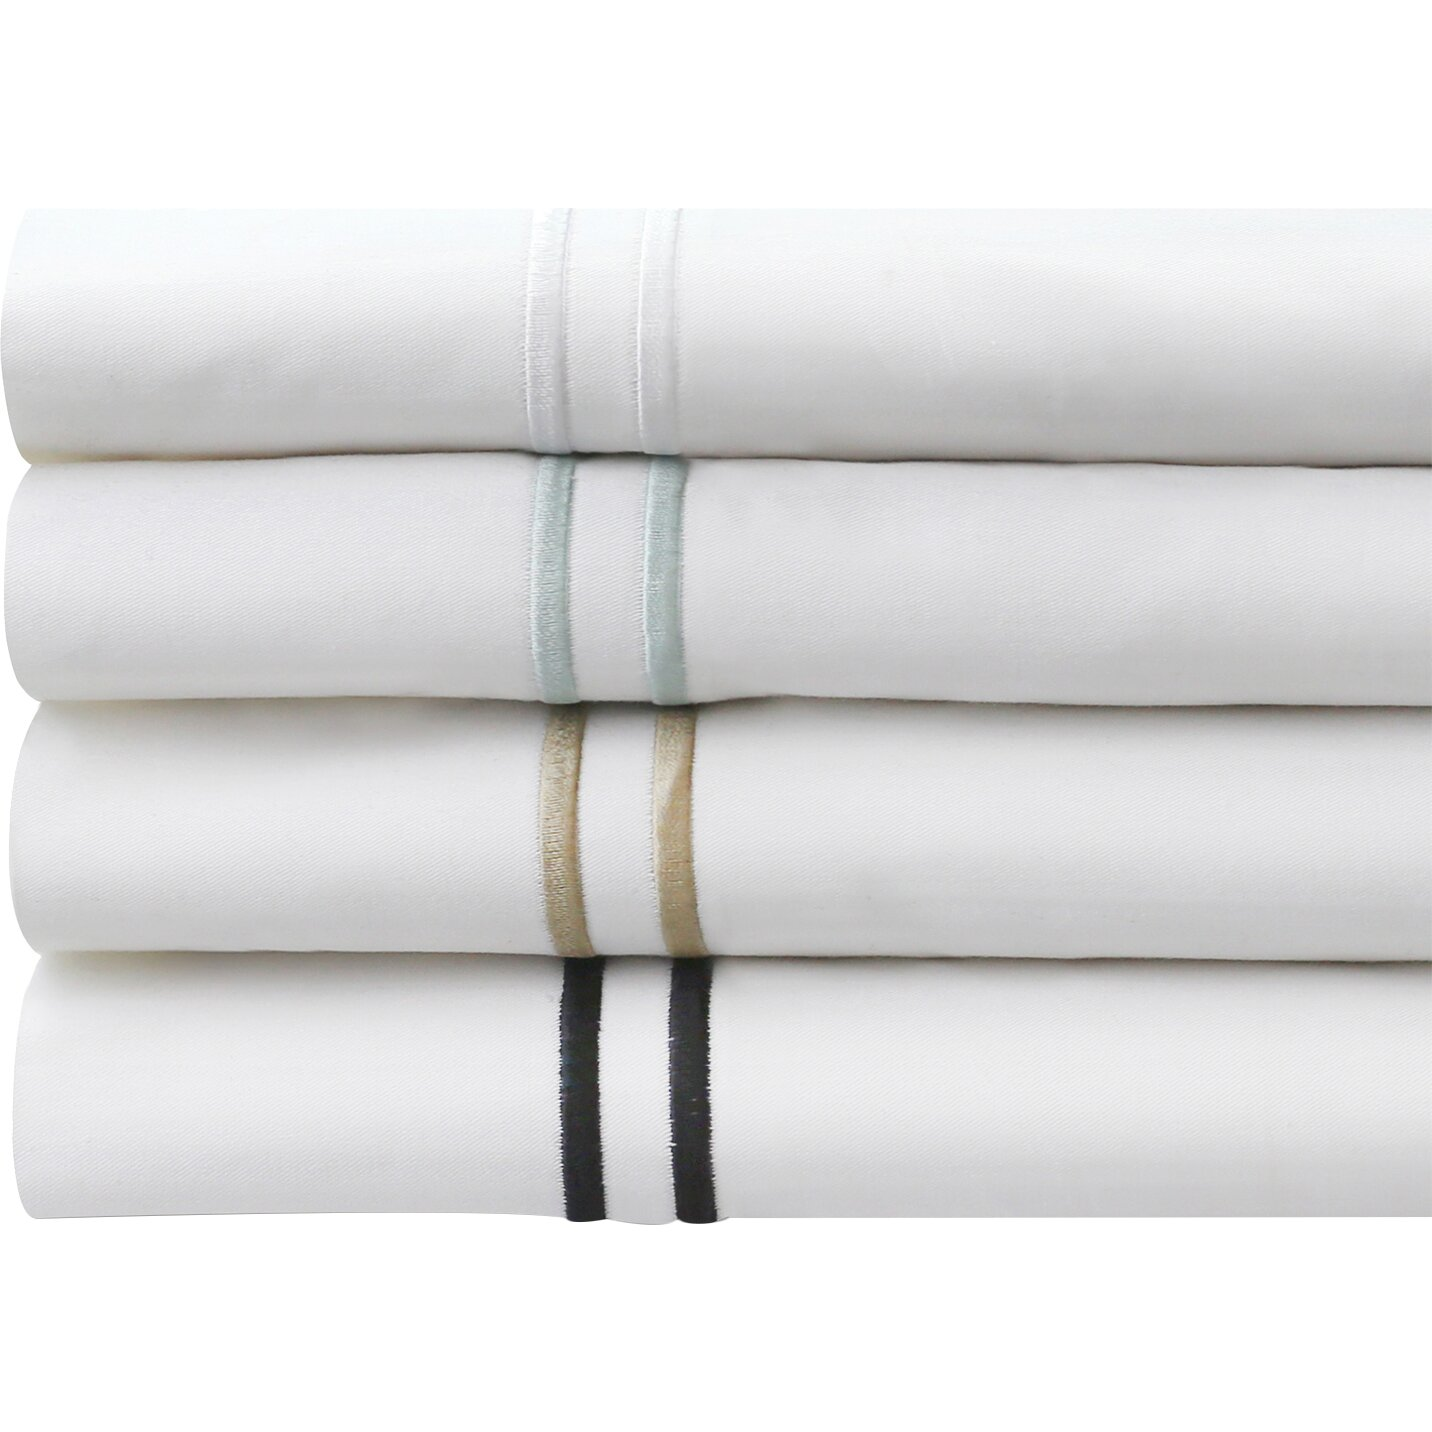 Malouf Hotel 200 Thread Count Percale Bed Sheet Set